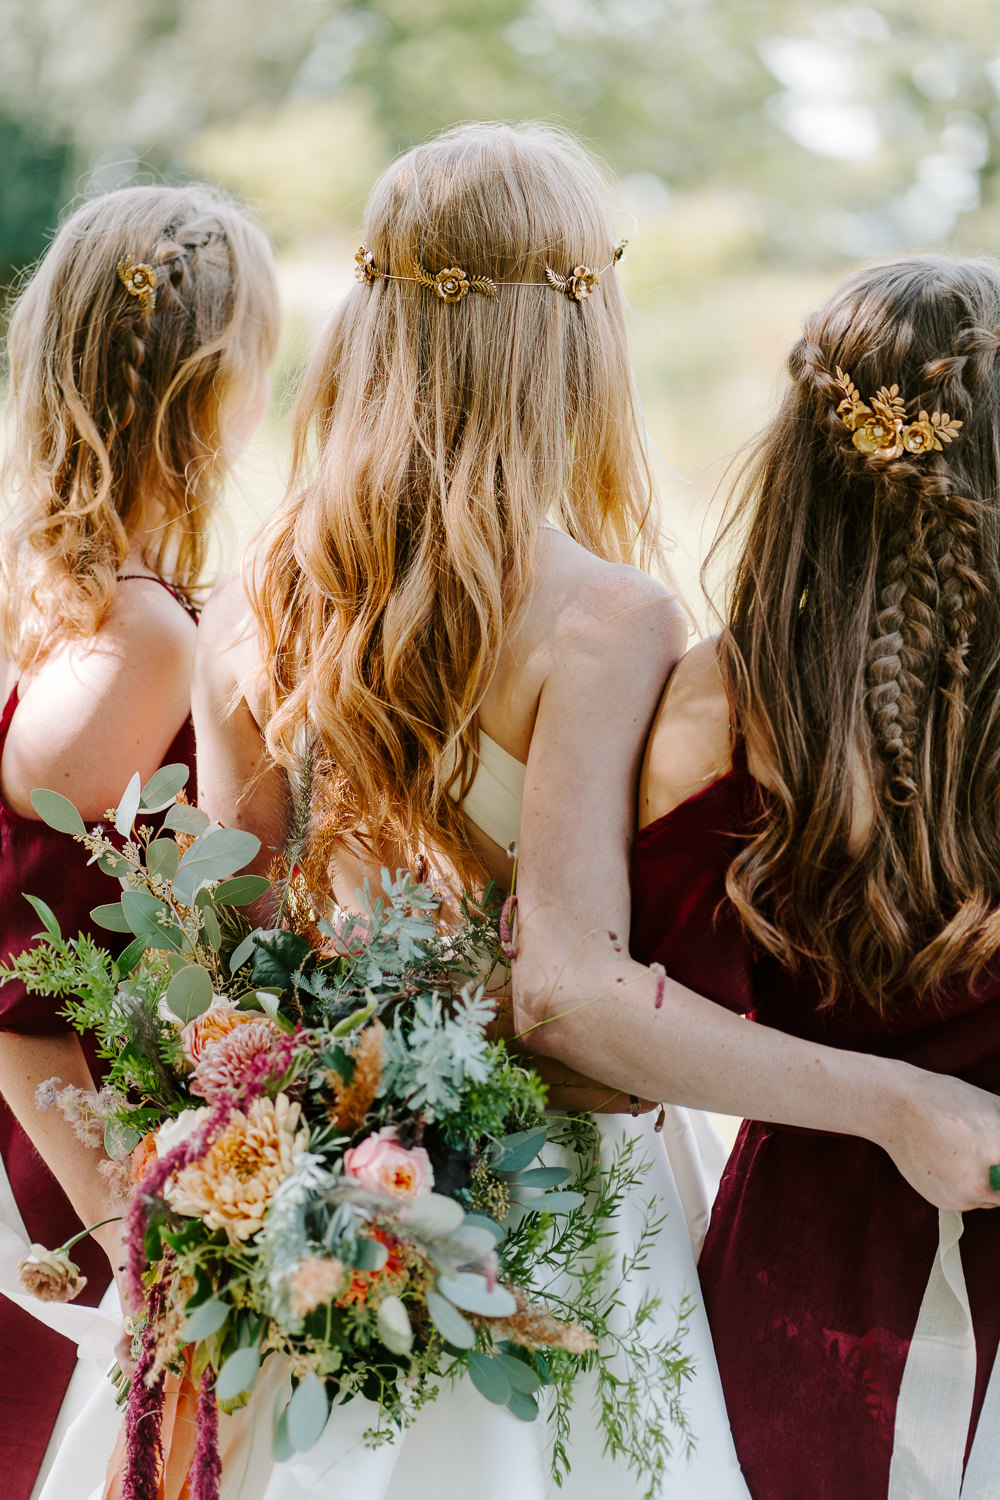 Bride Bridal Hair Bridesmaid Style Half Up Half Down Contemporary Wedding Ideas Chloe Ely Photography